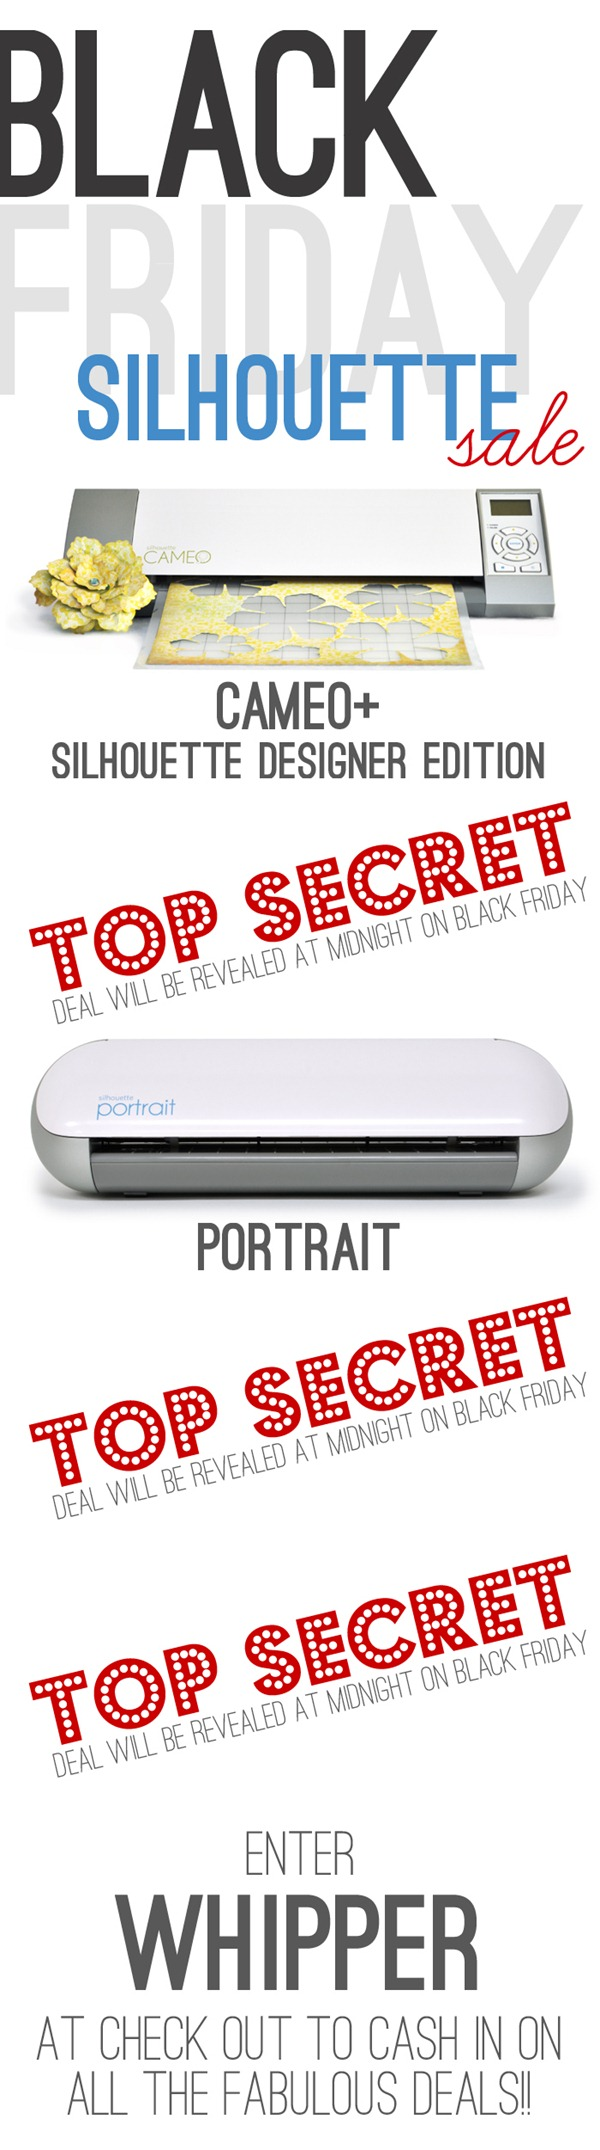 Silhouette Black Friday Specials TOP SECRET copy